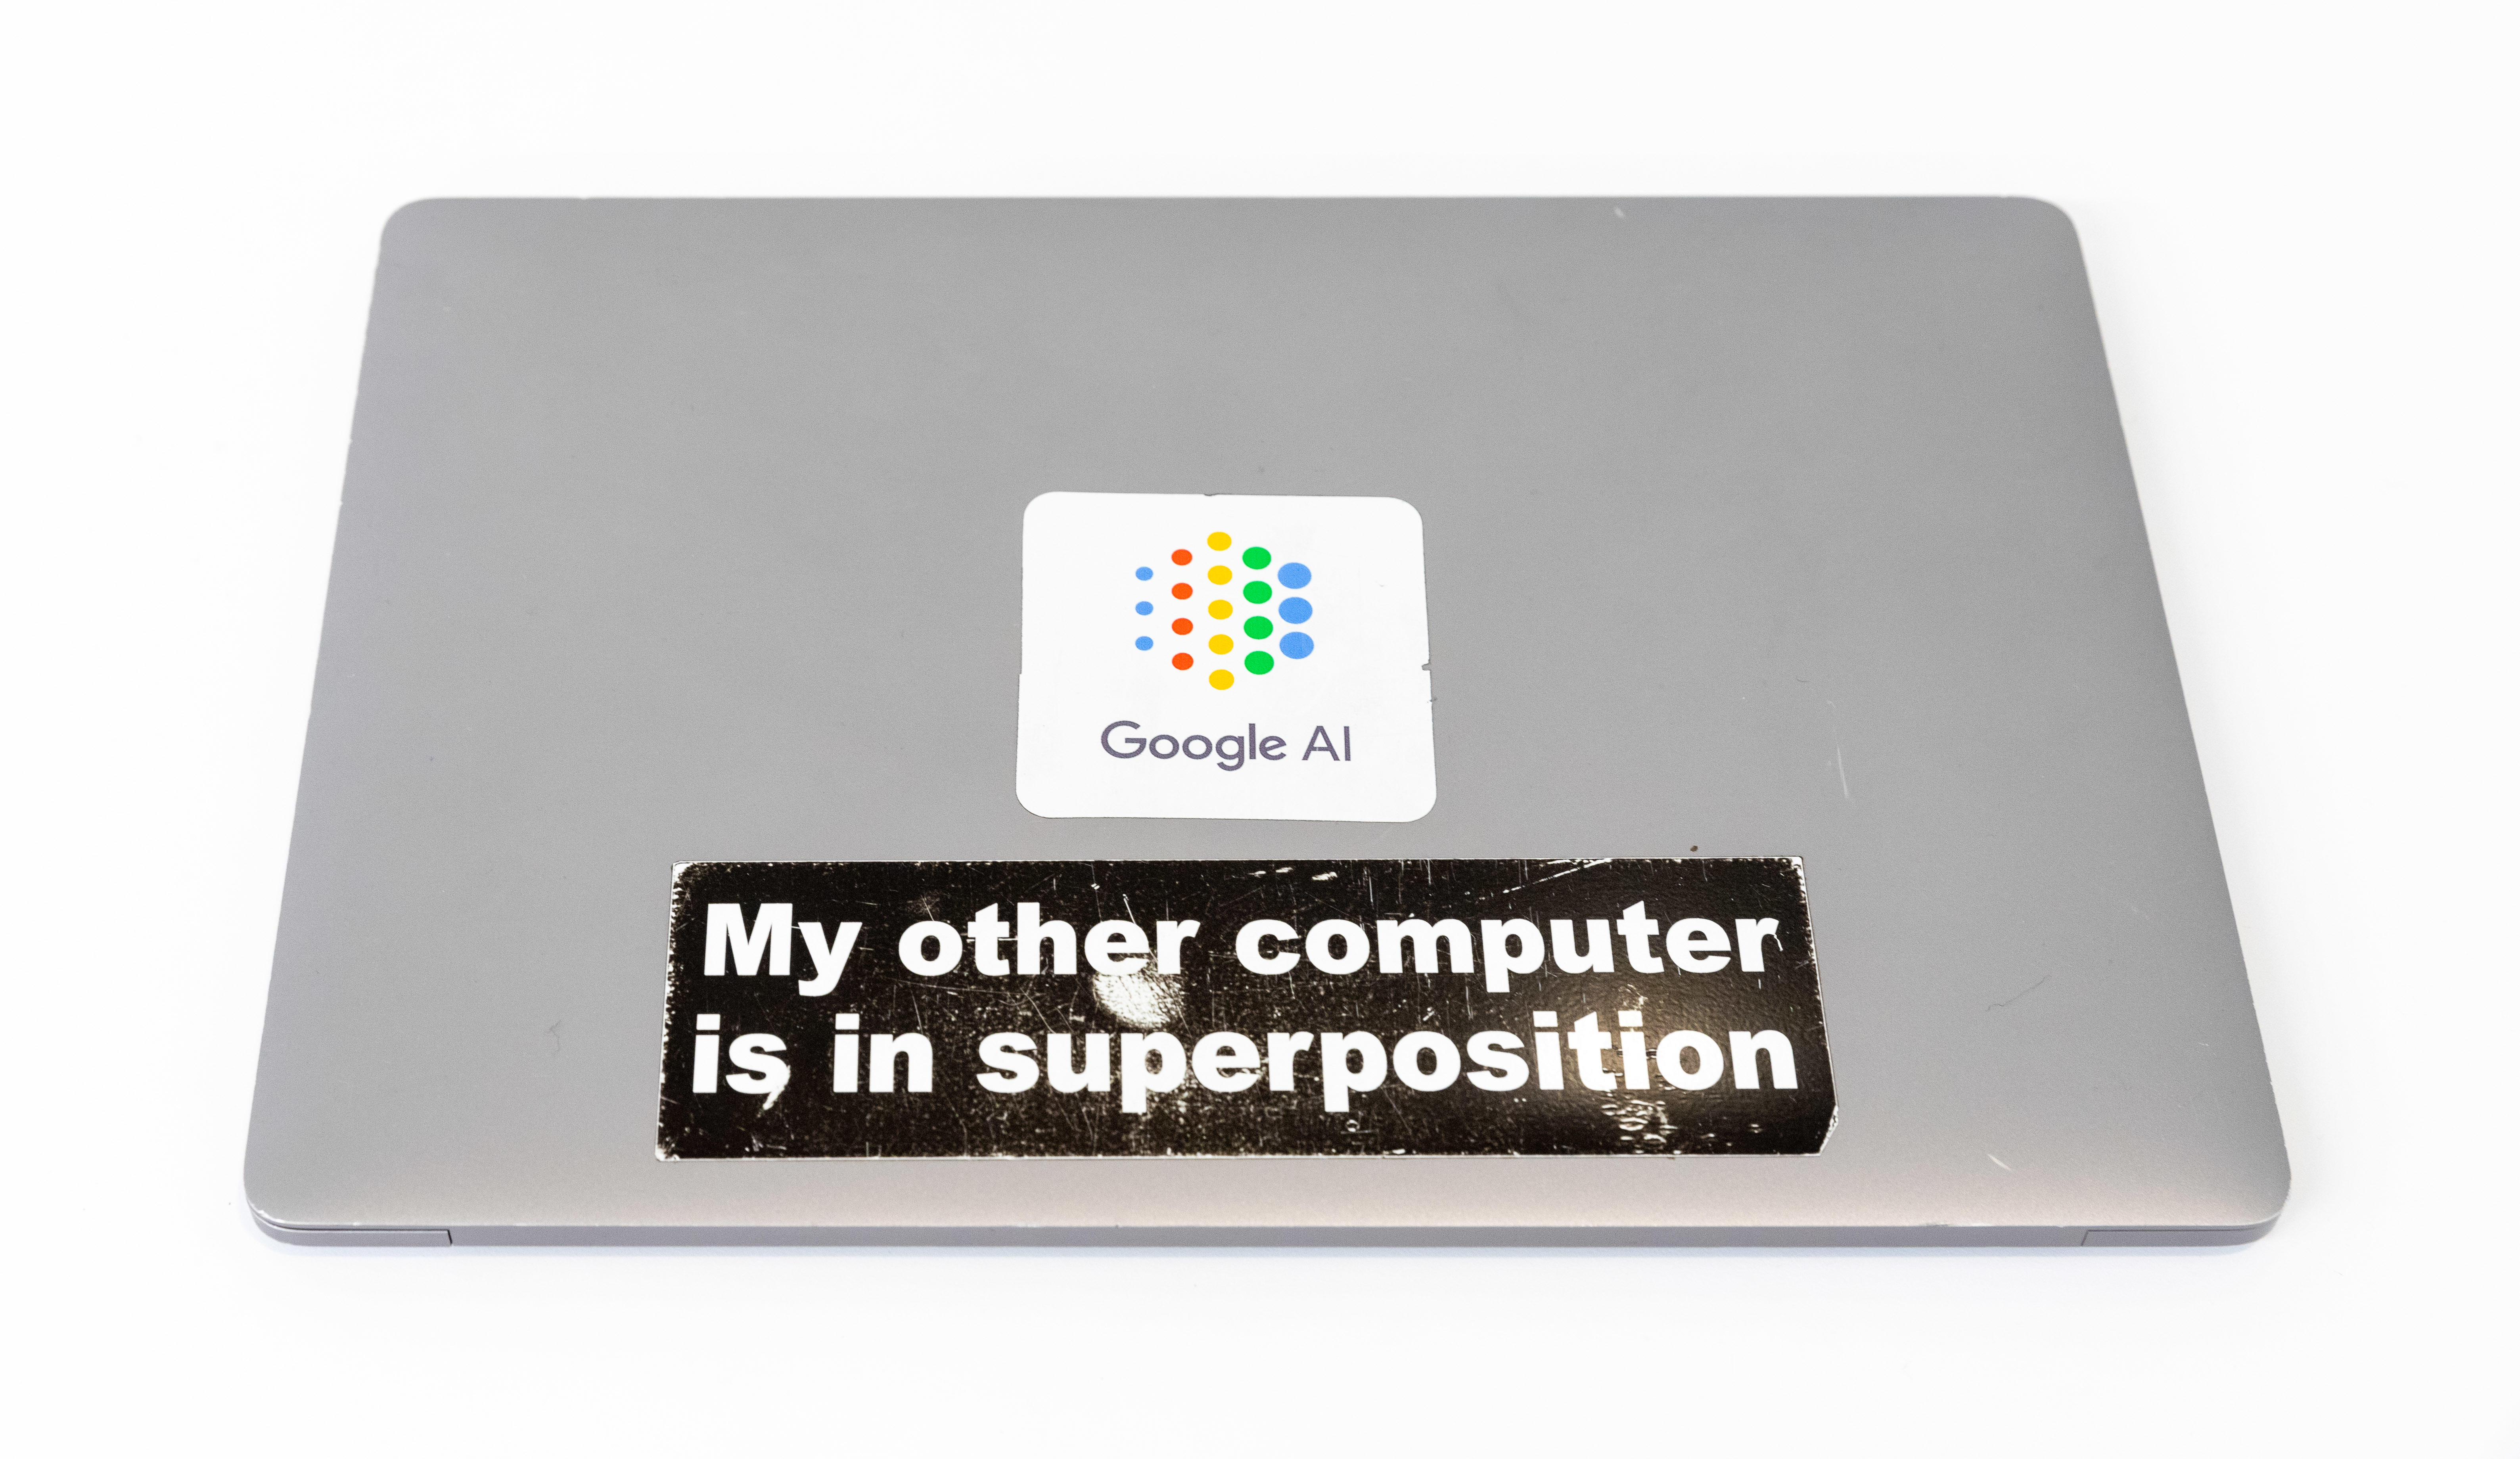 Google quantum computing sticker